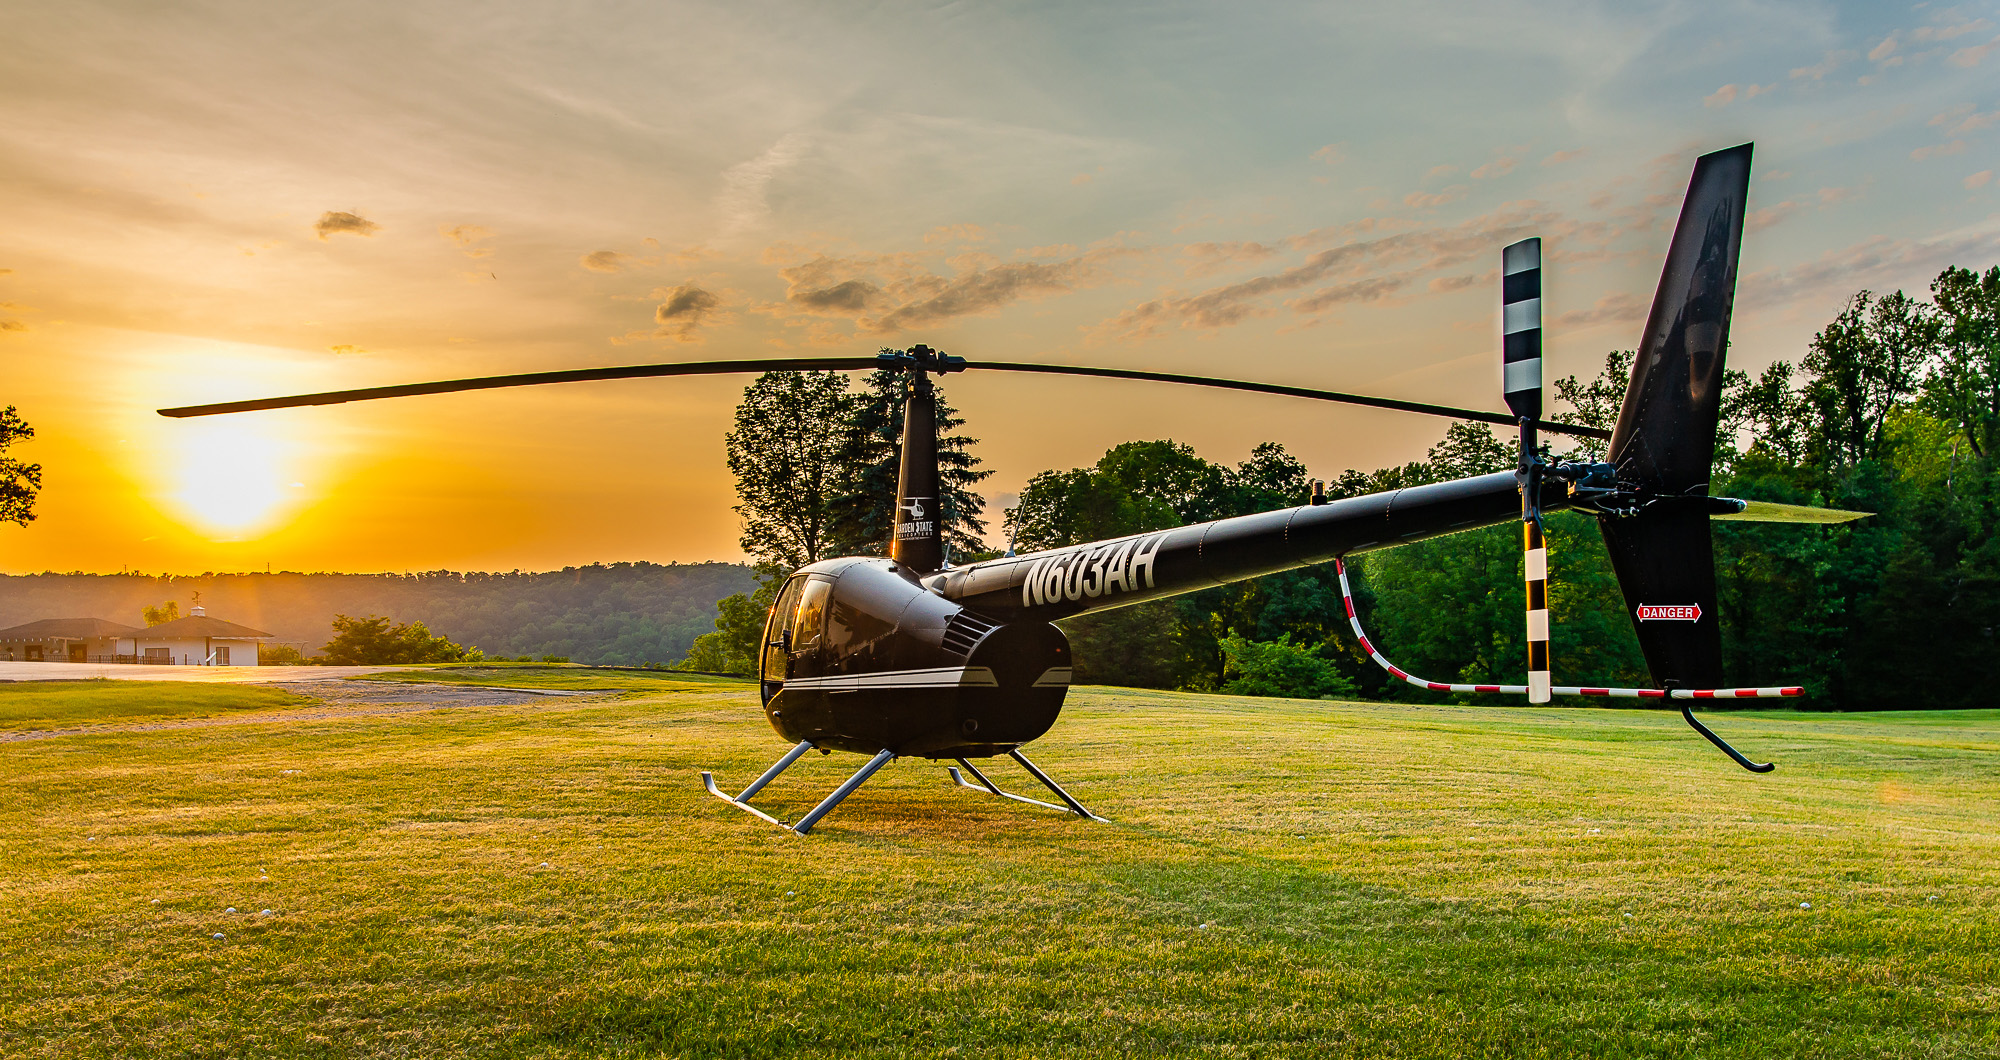 Services – Garden State Helicopters